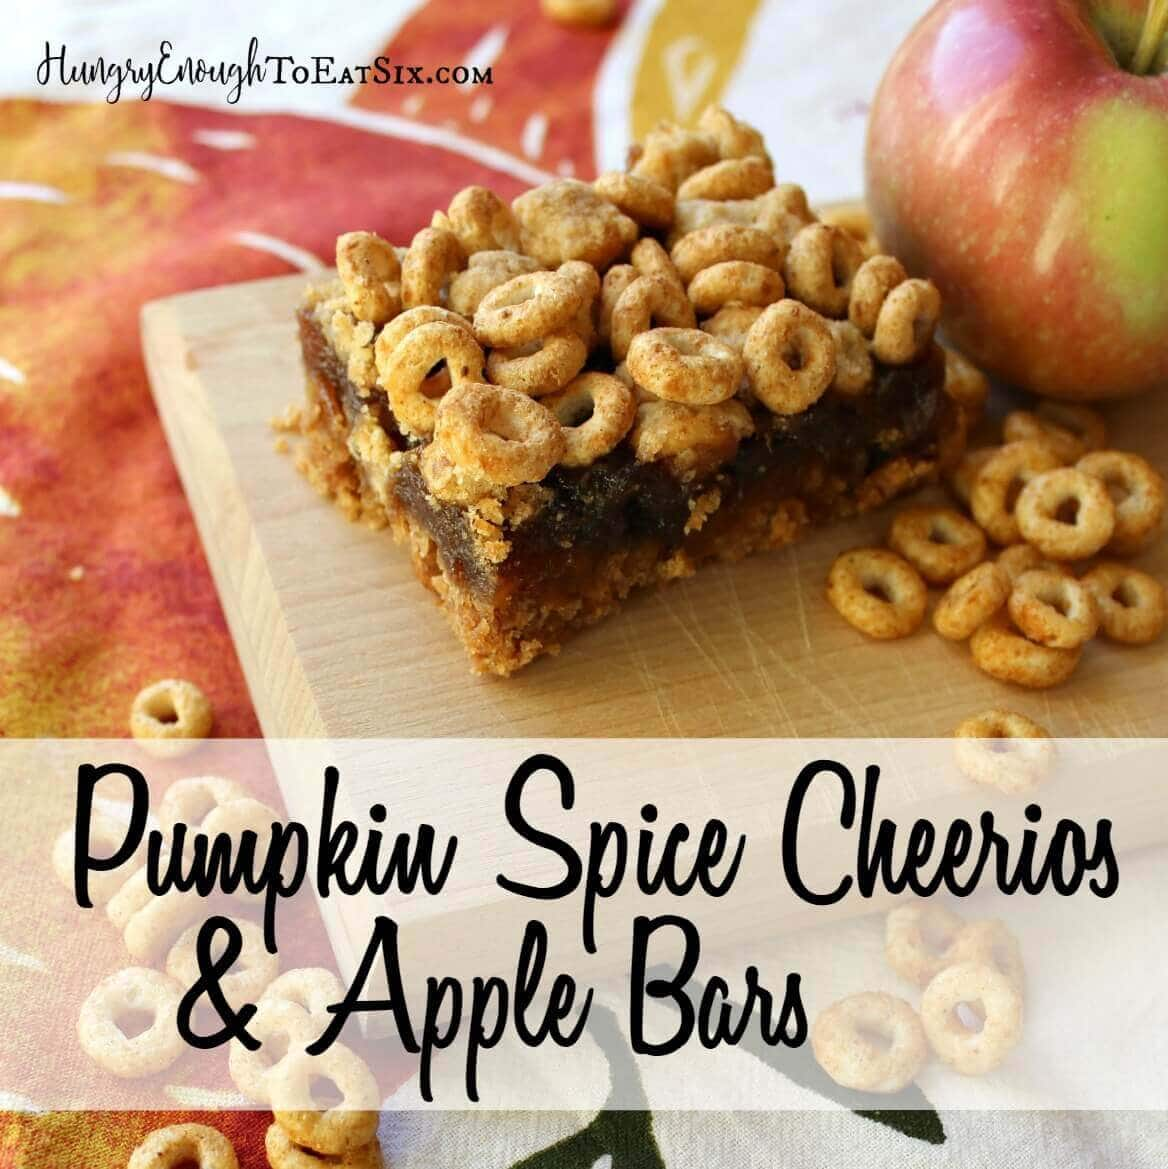 This recipe using Pumpkin Spice Cheerios has a flavorful, crunchy base and topping over a thick, cooked apple spread.